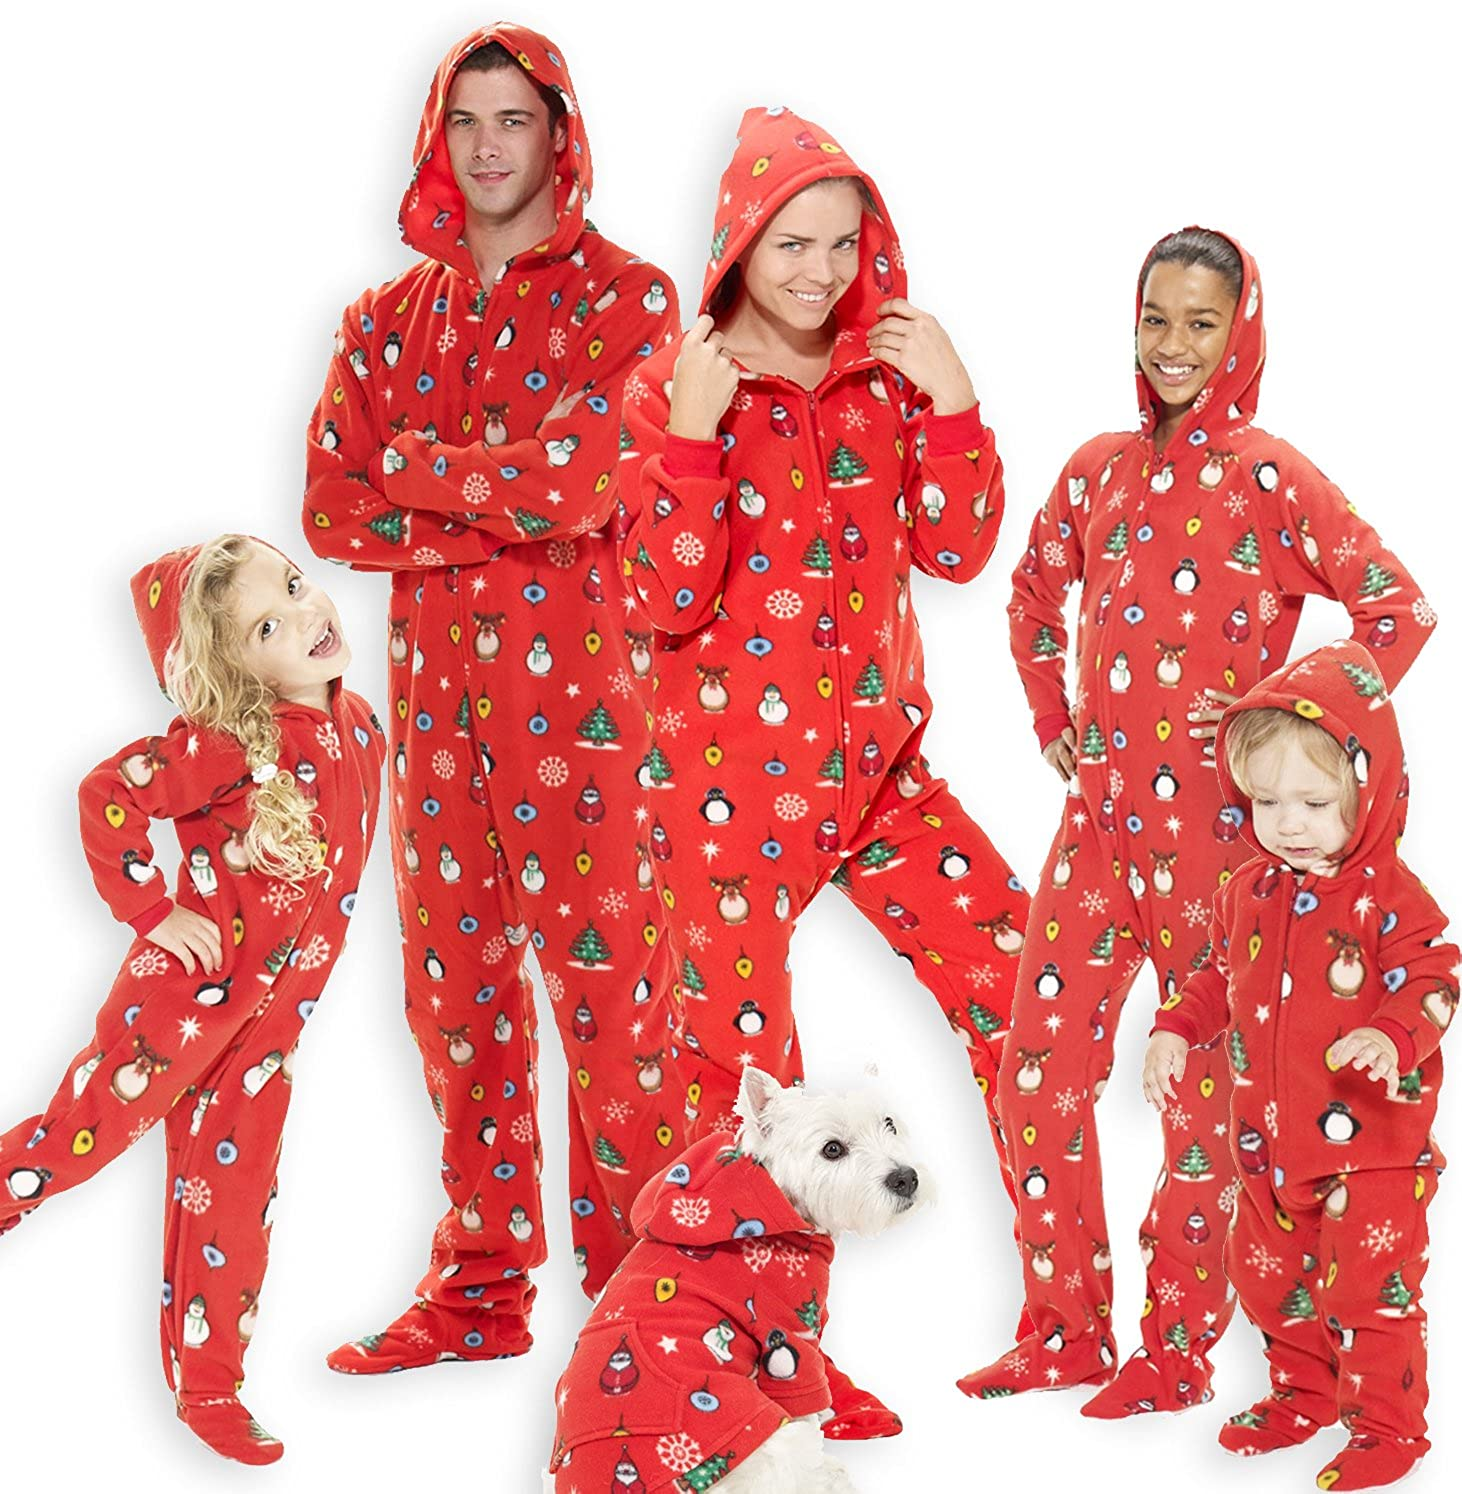 b6834fae3a Amazon.com  Footed Pajamas - Family Matching Red Christmas Hoodie Onesies  for Boys